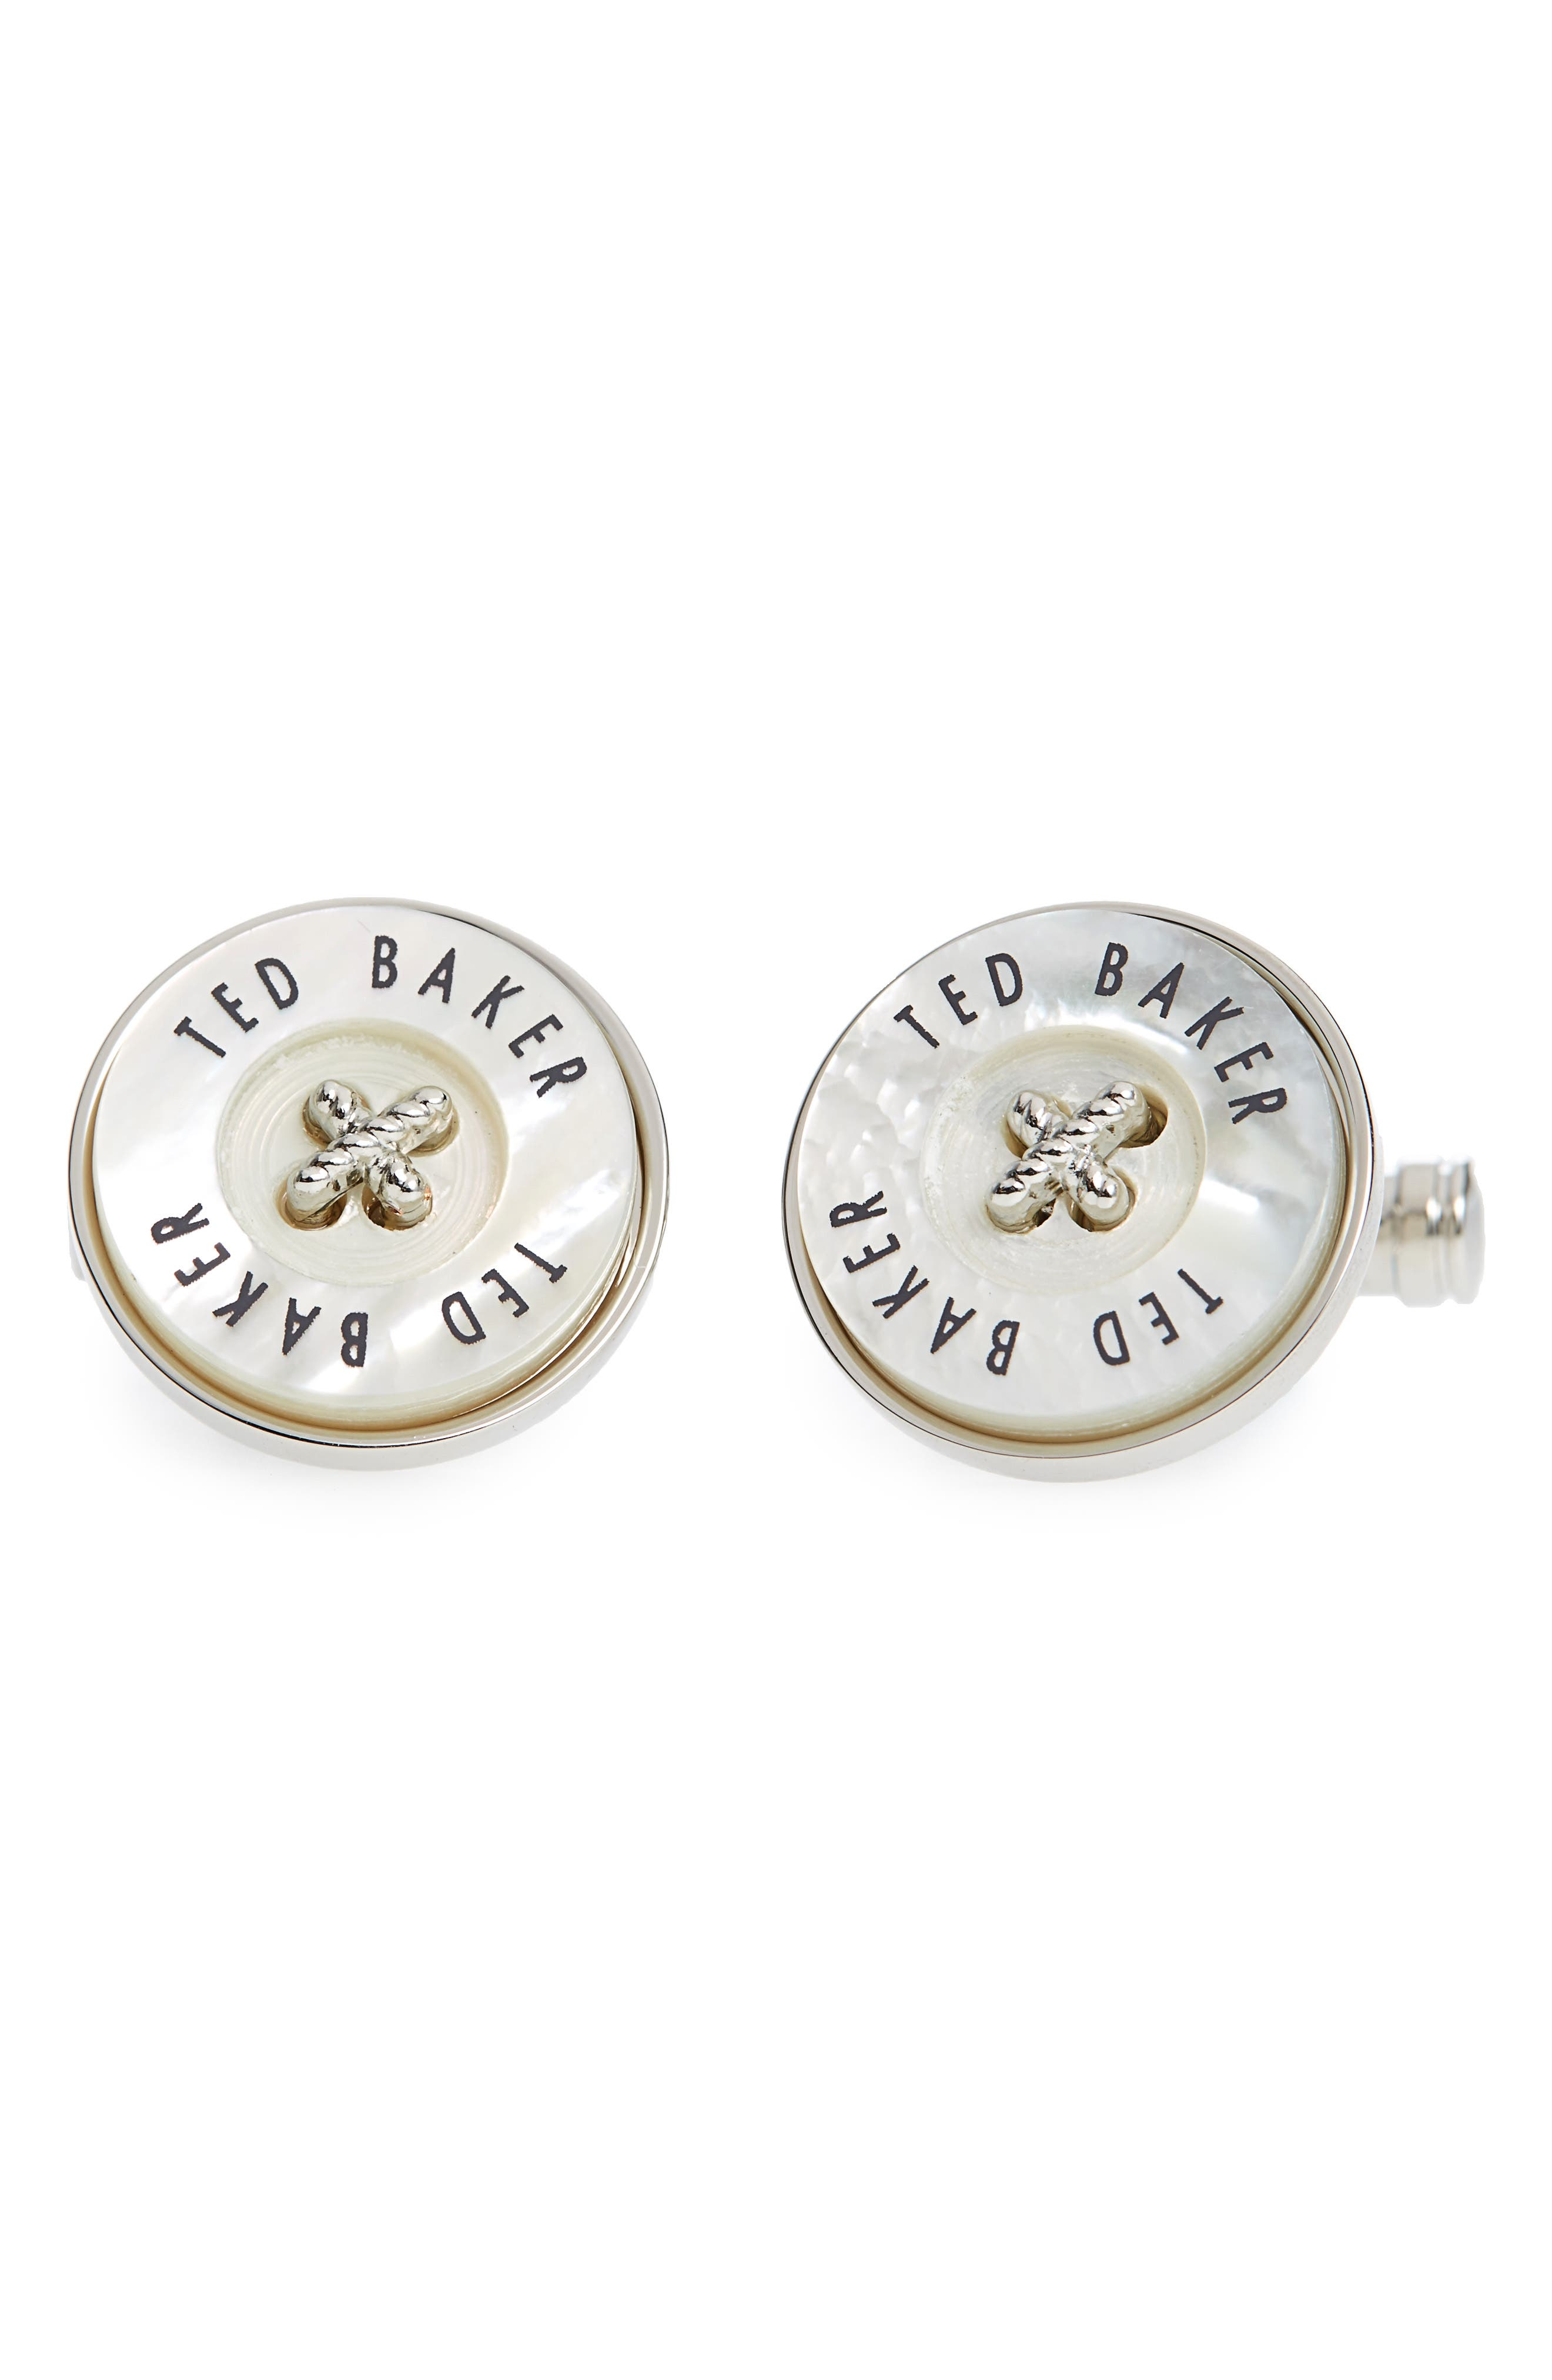 Ted Baker London Sizzle Cuff Links